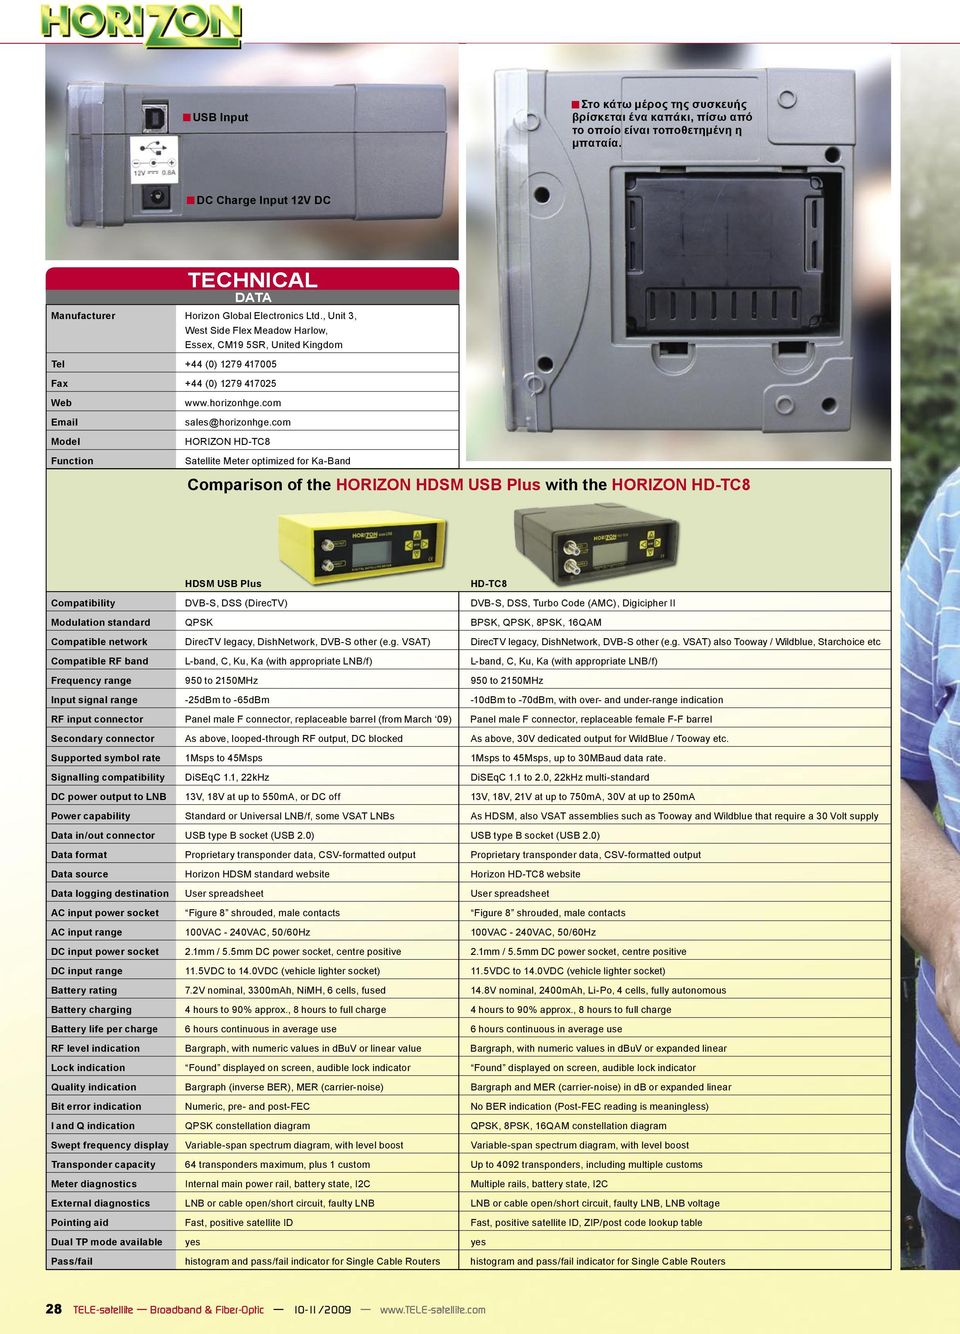 com HORIZON HD-TC8 Satellite Meter optimized for Ka-Band Comparison of the HORIZON HDSM USB Plus with the HORIZON HD-TC8 HDSM USB Plus HD-TC8 Compatibility DVB-S, DSS (DirecTV) DVB-S, DSS, Turbo Code